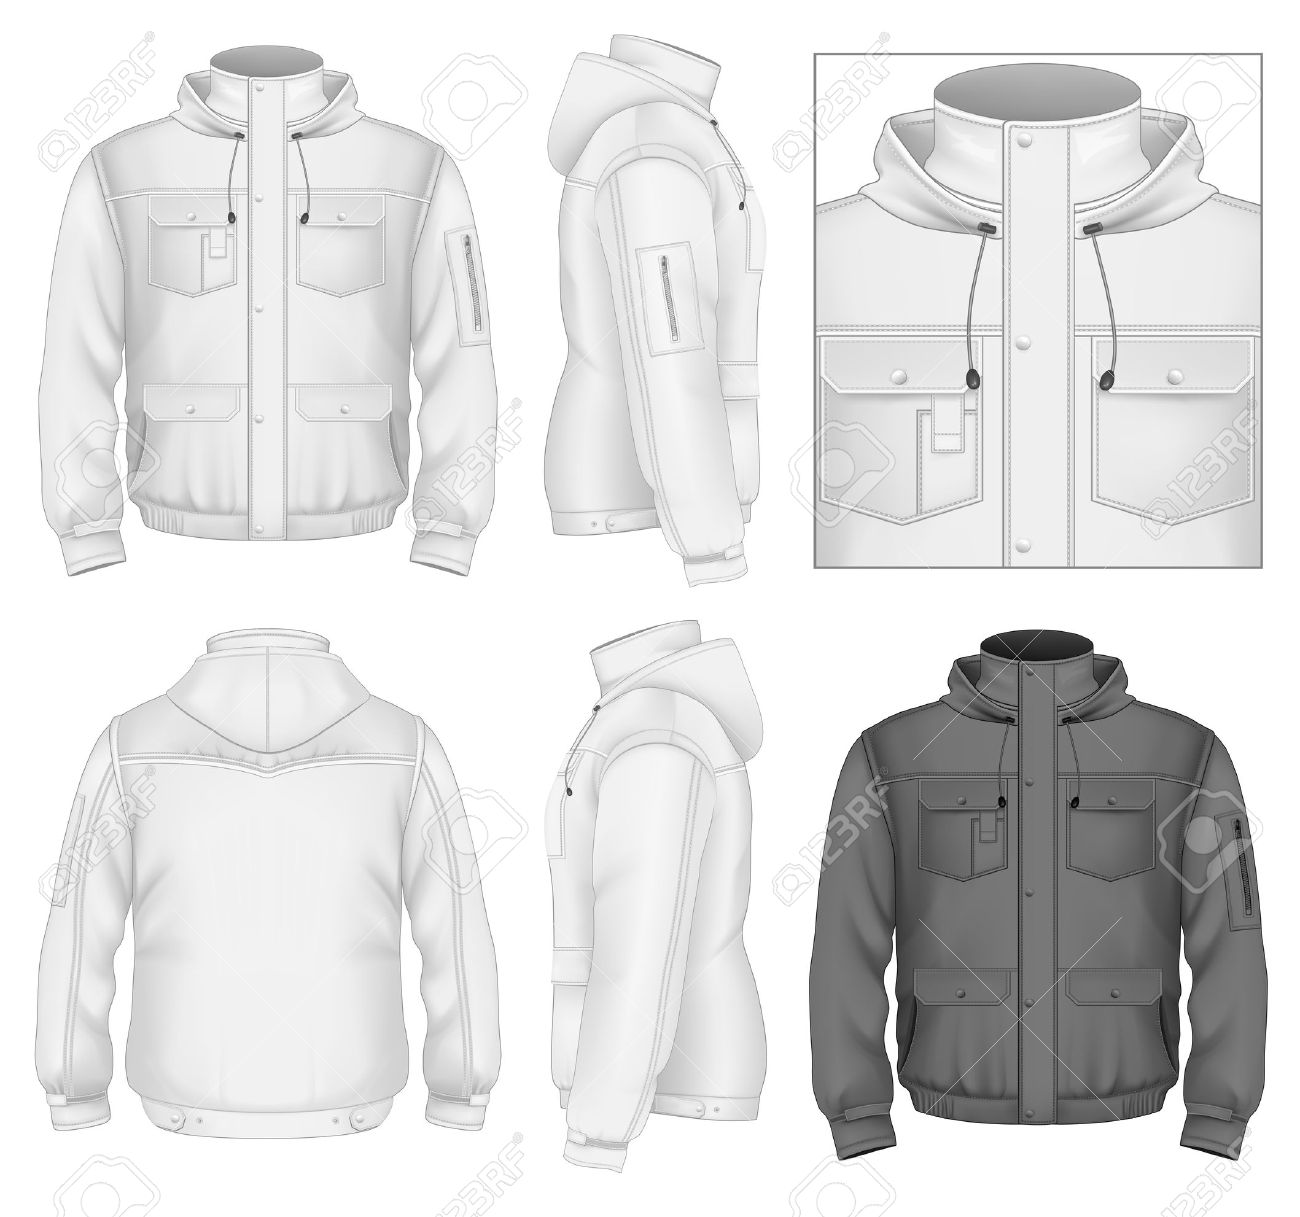 Mens Flight Jacket With Hood Design Template Front View Back And Side Views